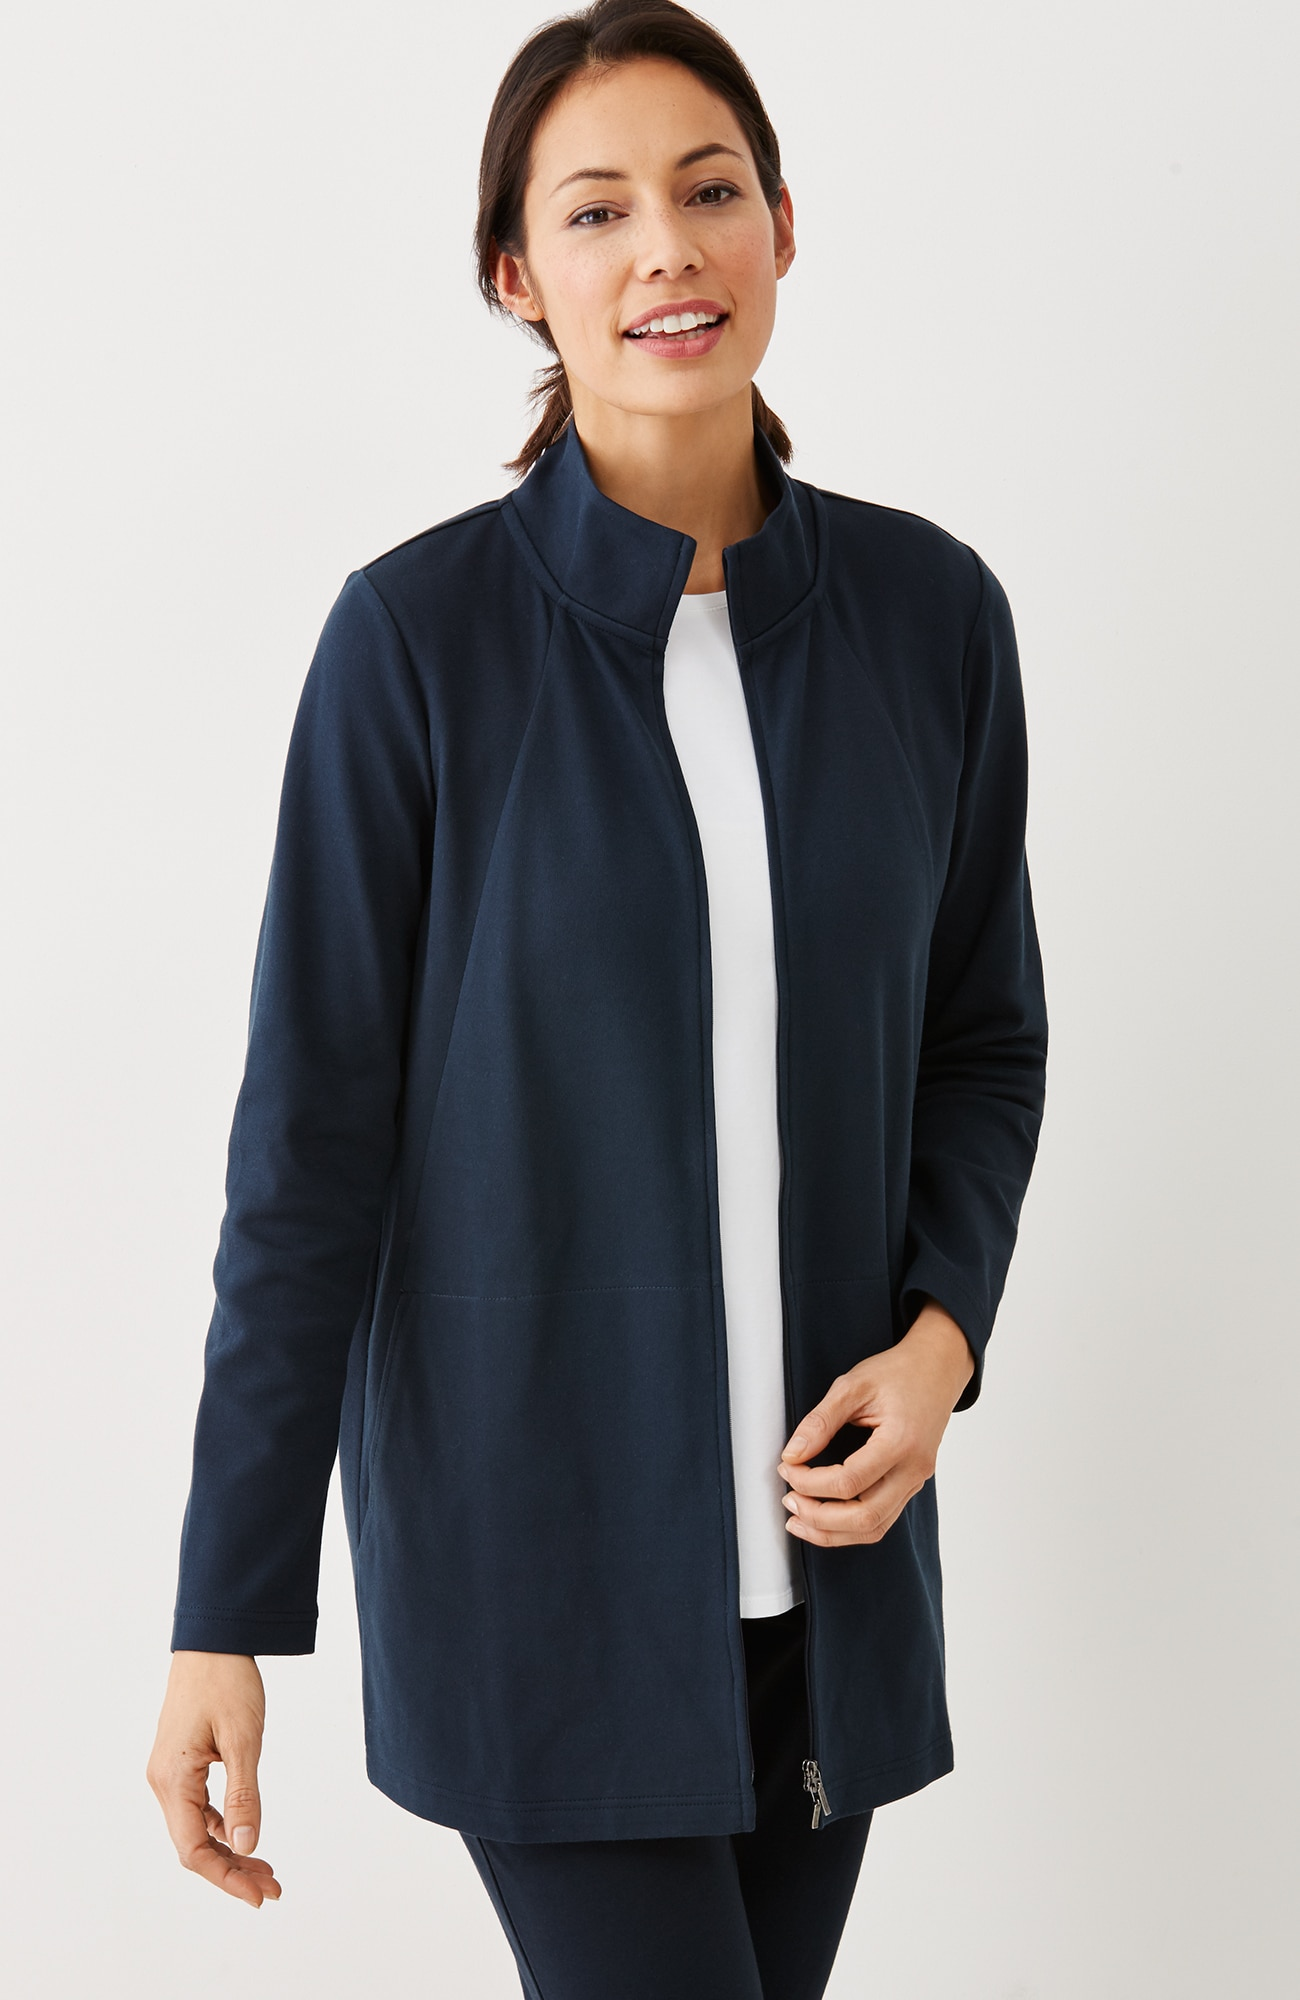 Pure Jill seamed jacket